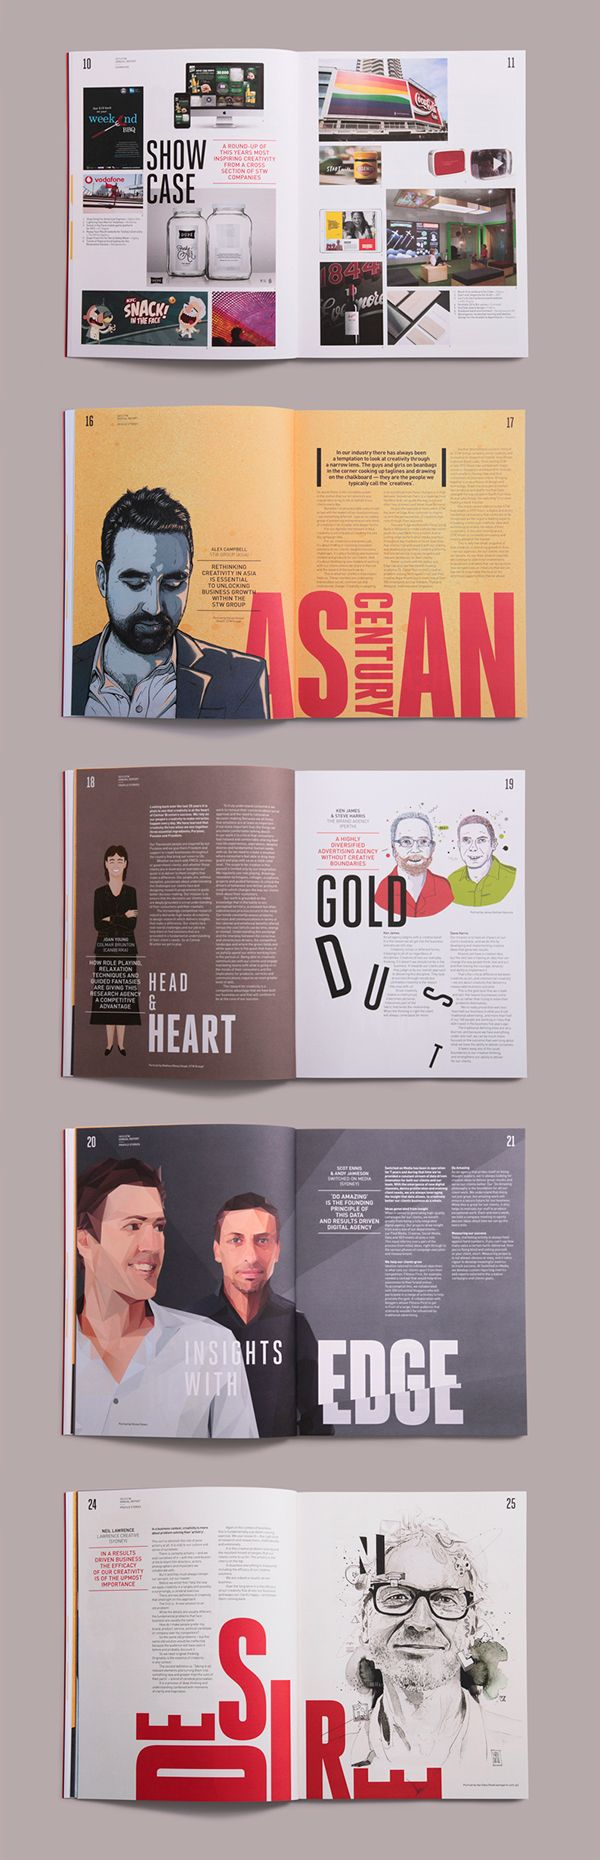 STW Group | Annual Report & Event on Behance. Great layout, striking colour and bold text.